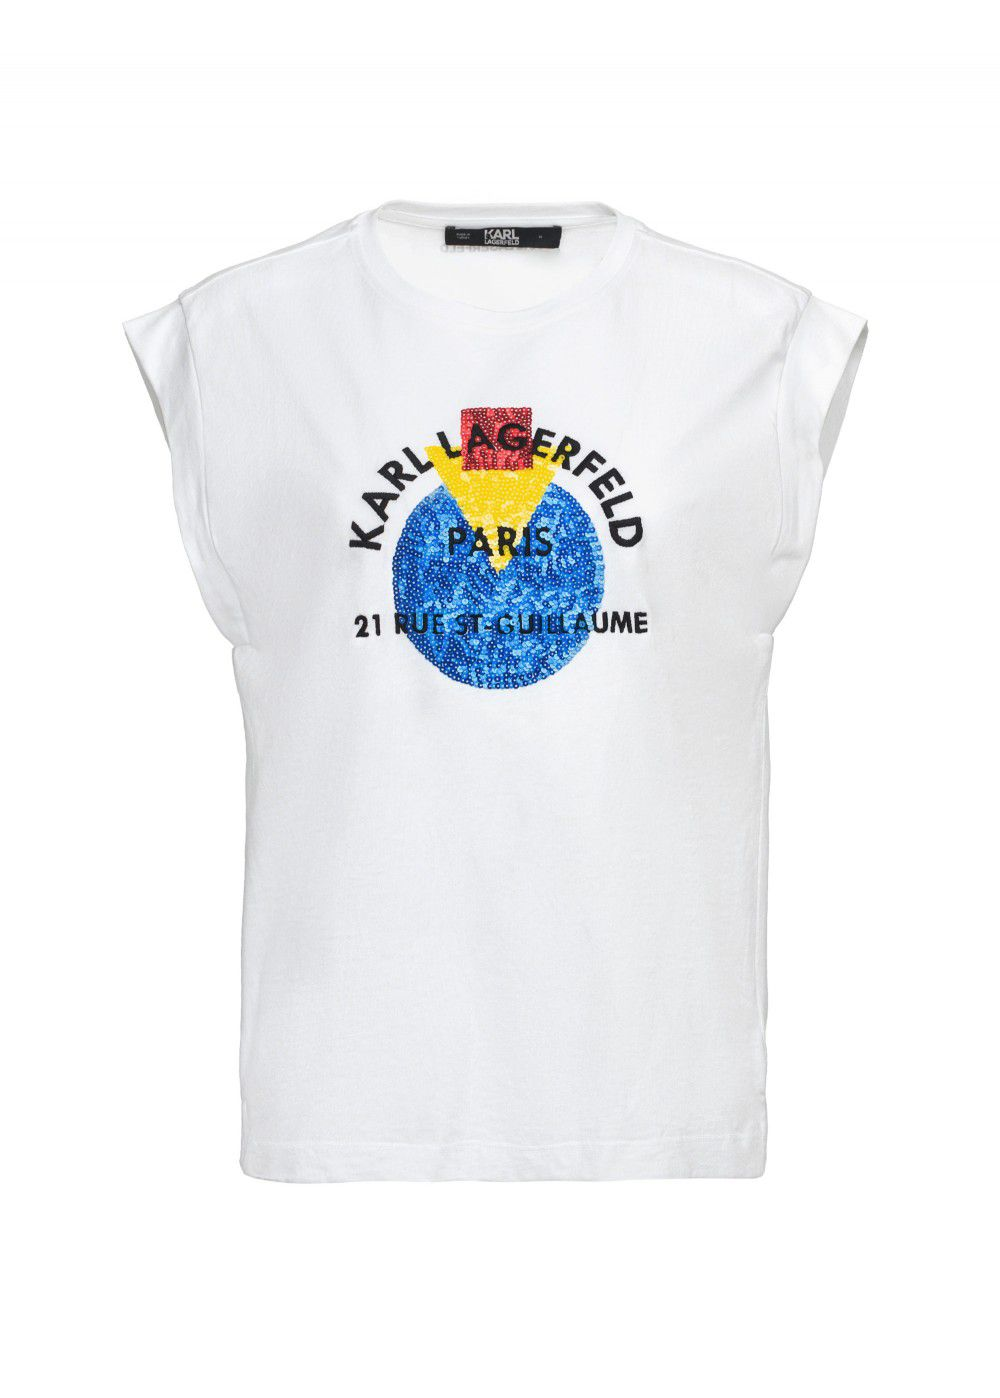 Karl Lagerfeld White Sleeveless T-Shirt